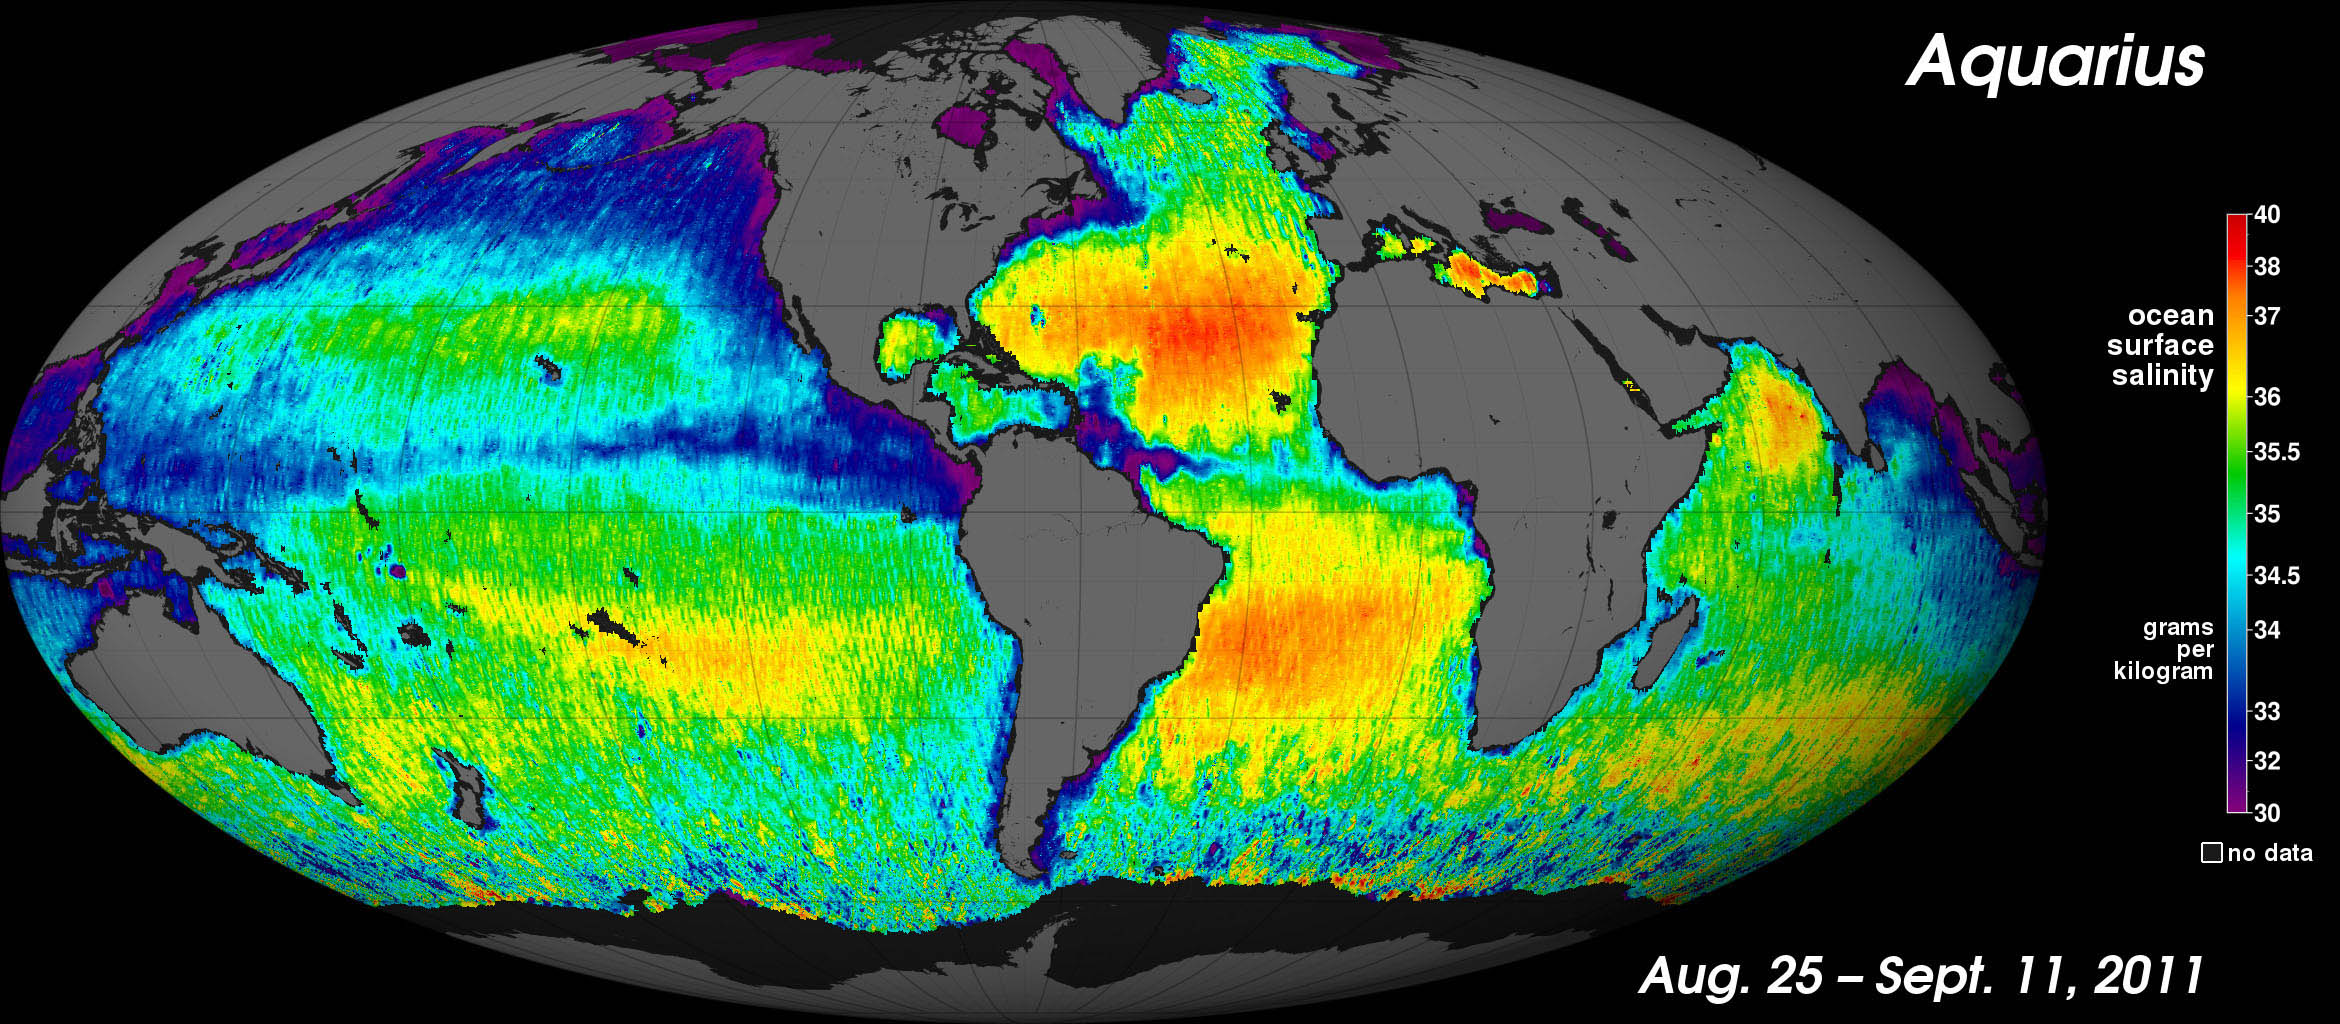 NASA's Aquarius instrument has produced its first global map of the salinity, or saltiness, of Earth's ocean surface, providing an early glimpse of the mission's anticipated discoveries.